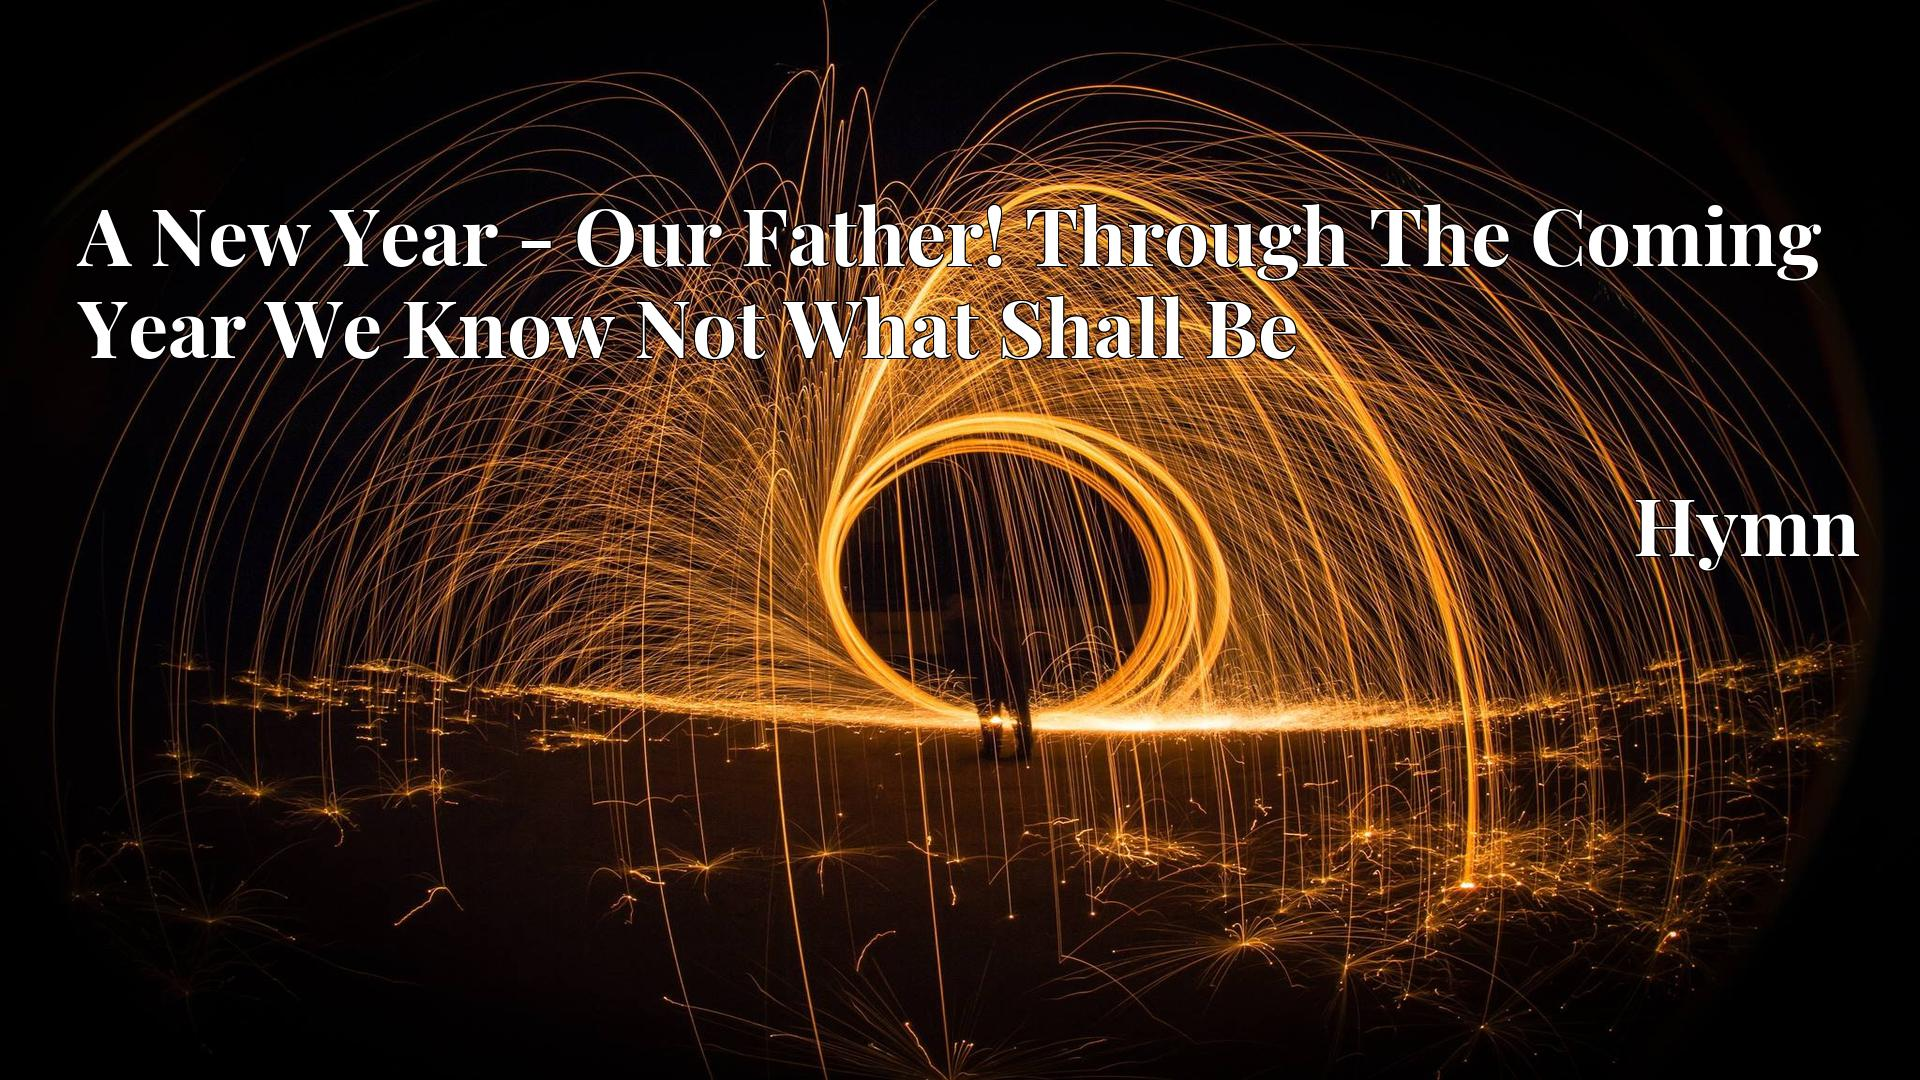 A New Year - Our Father! Through The Coming Year We Know Not What Shall Be - Hymn